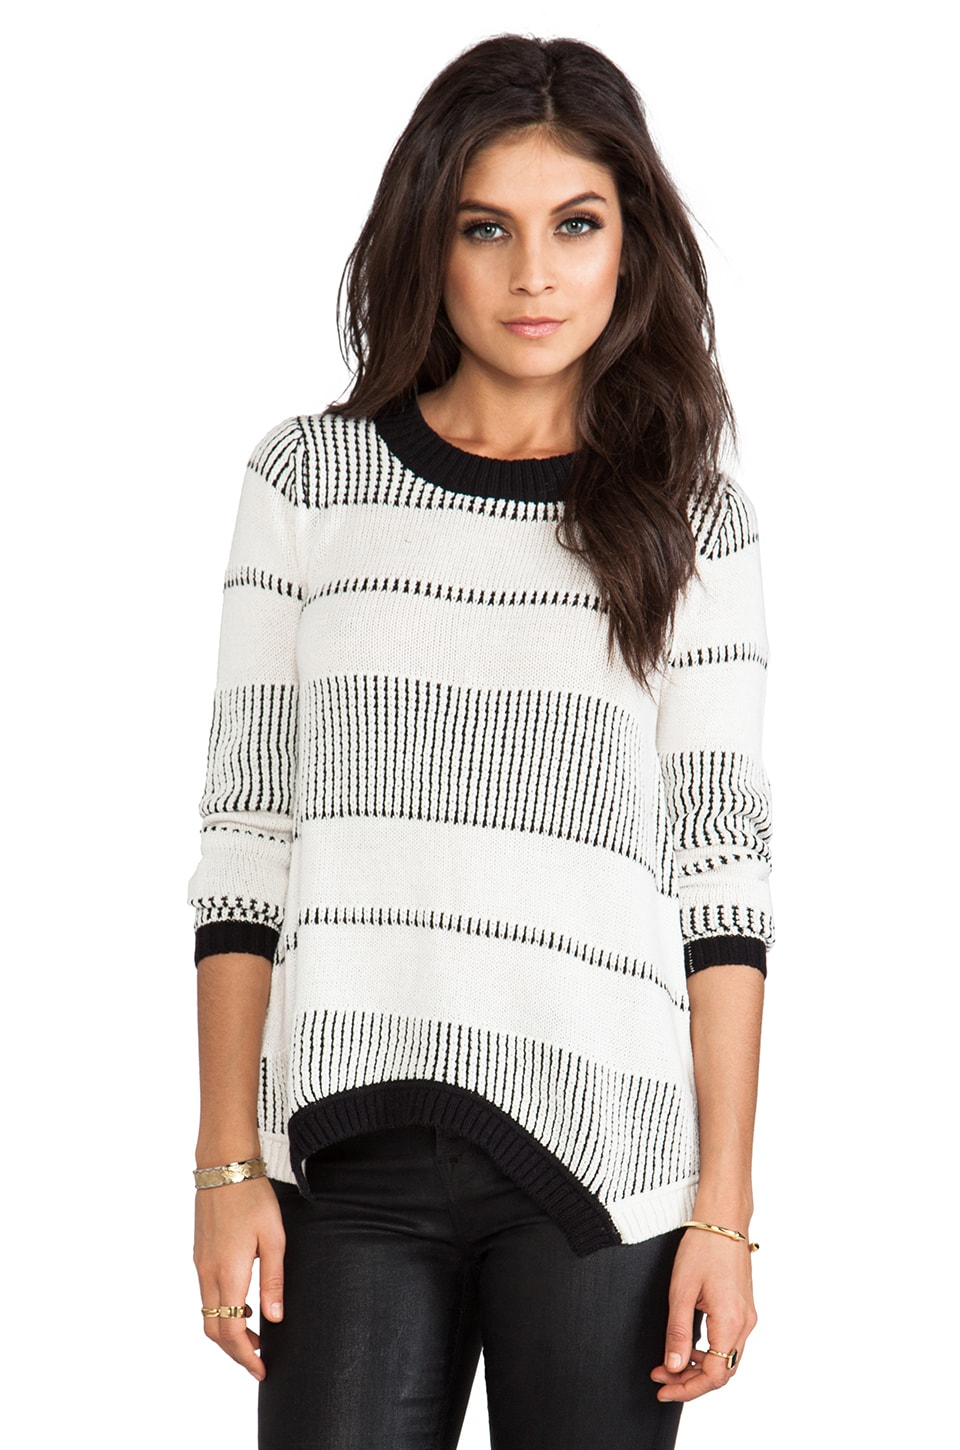 Central Park West Crete Asymmetric Hem Sweater in White